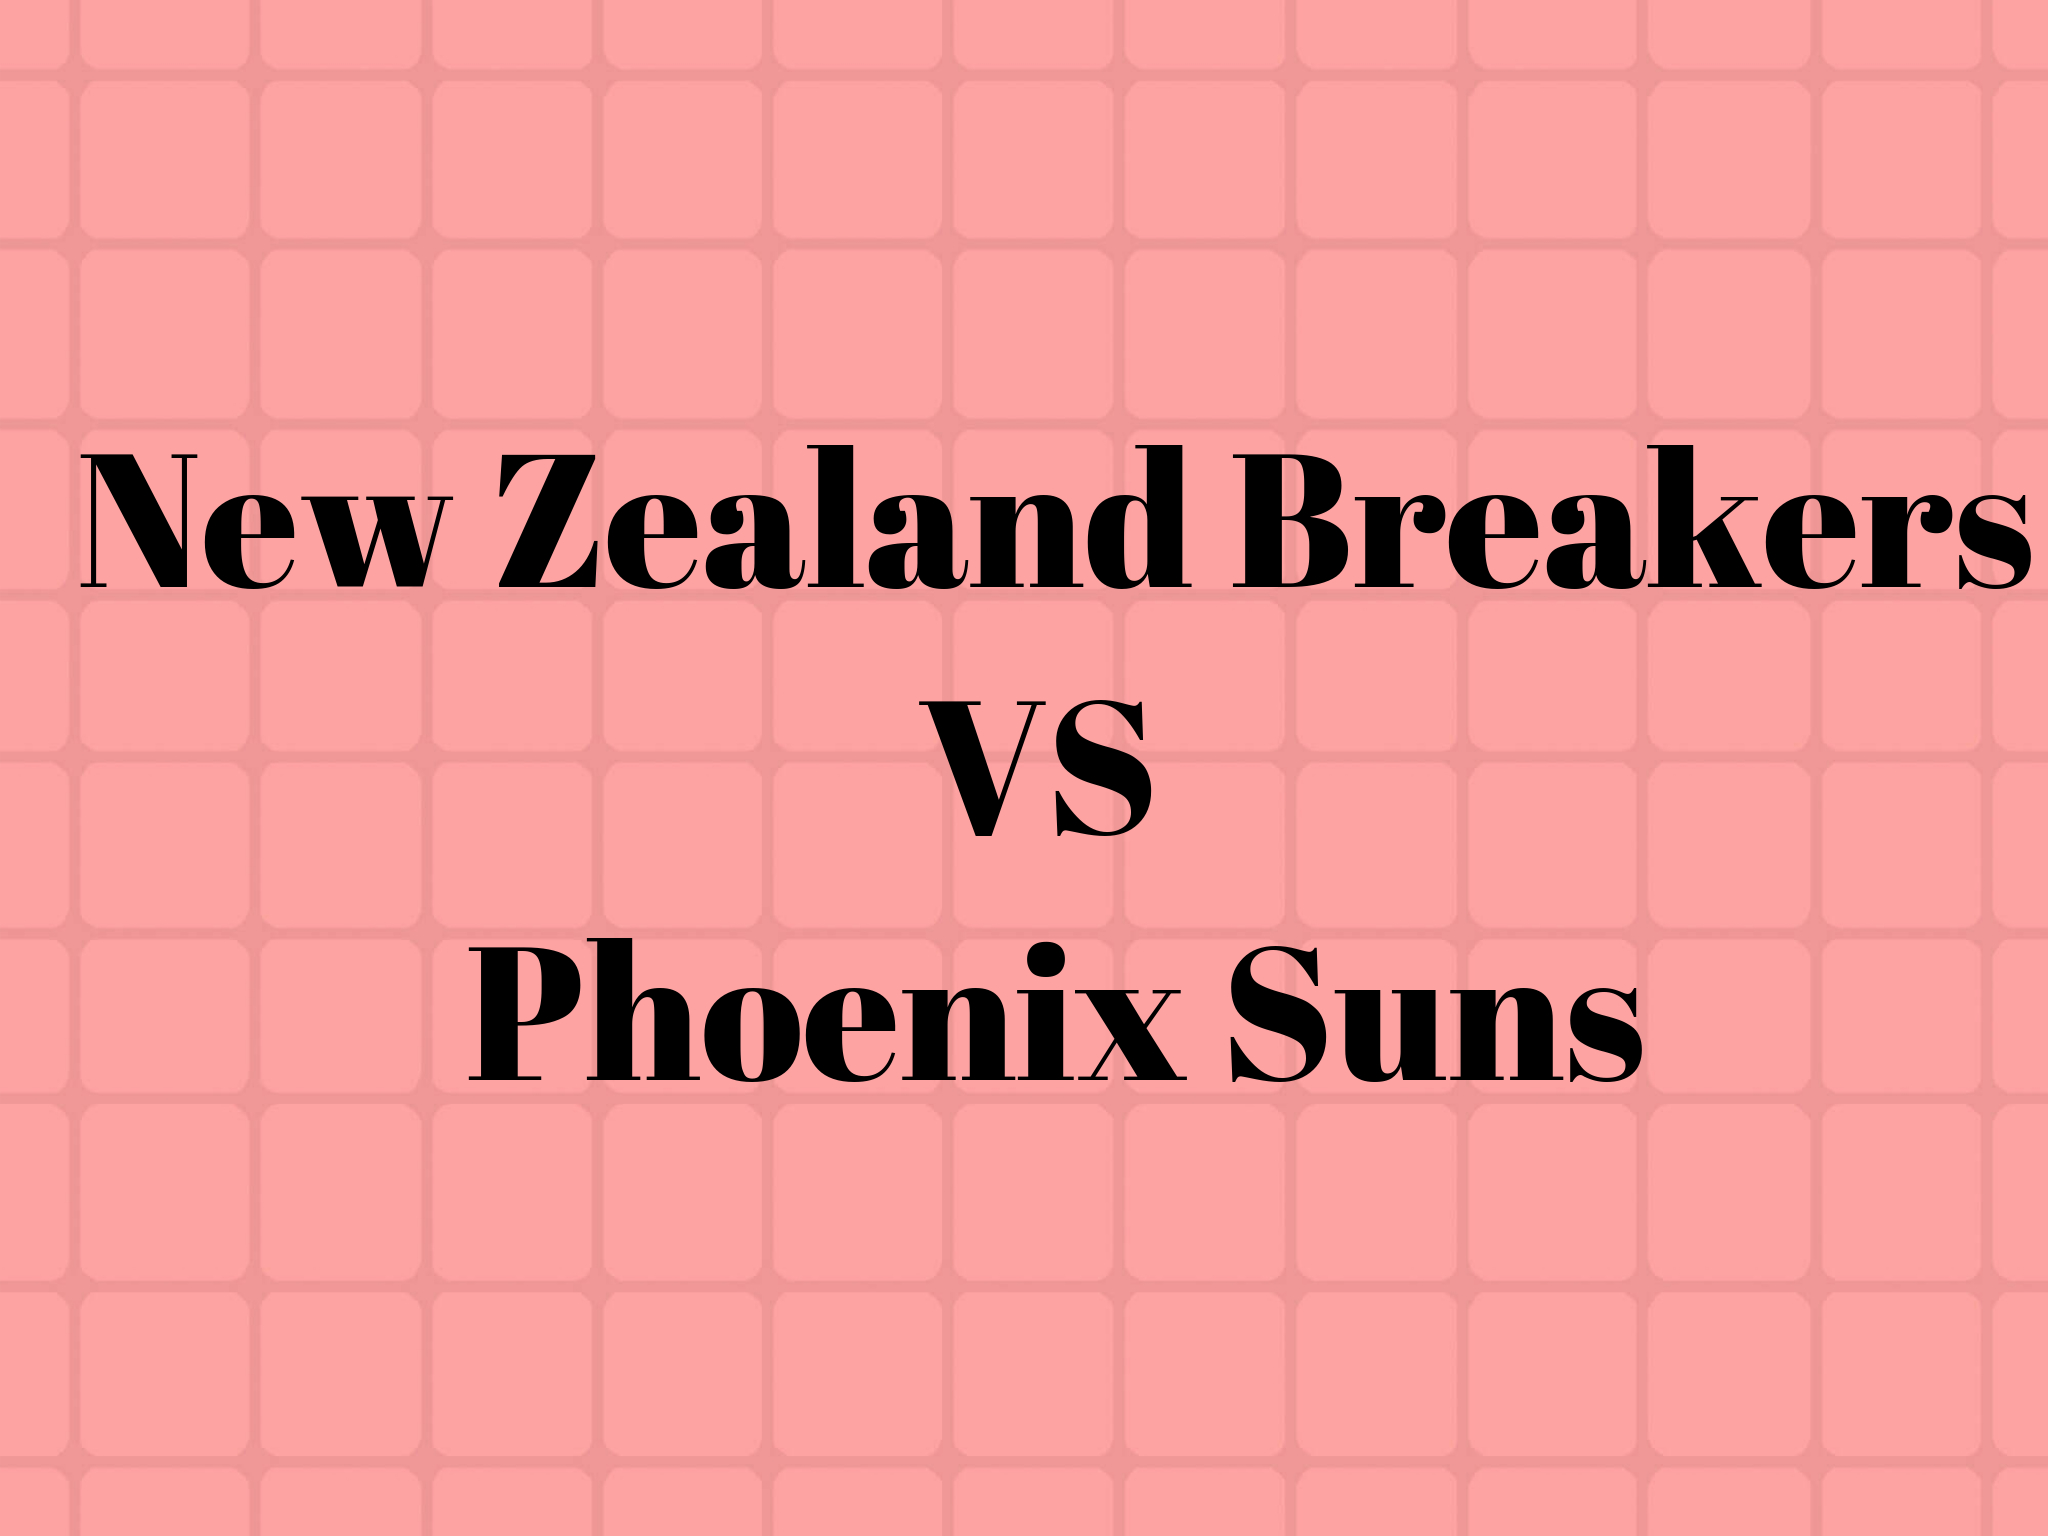 New Zealand Breakers VS Phoenix Suns